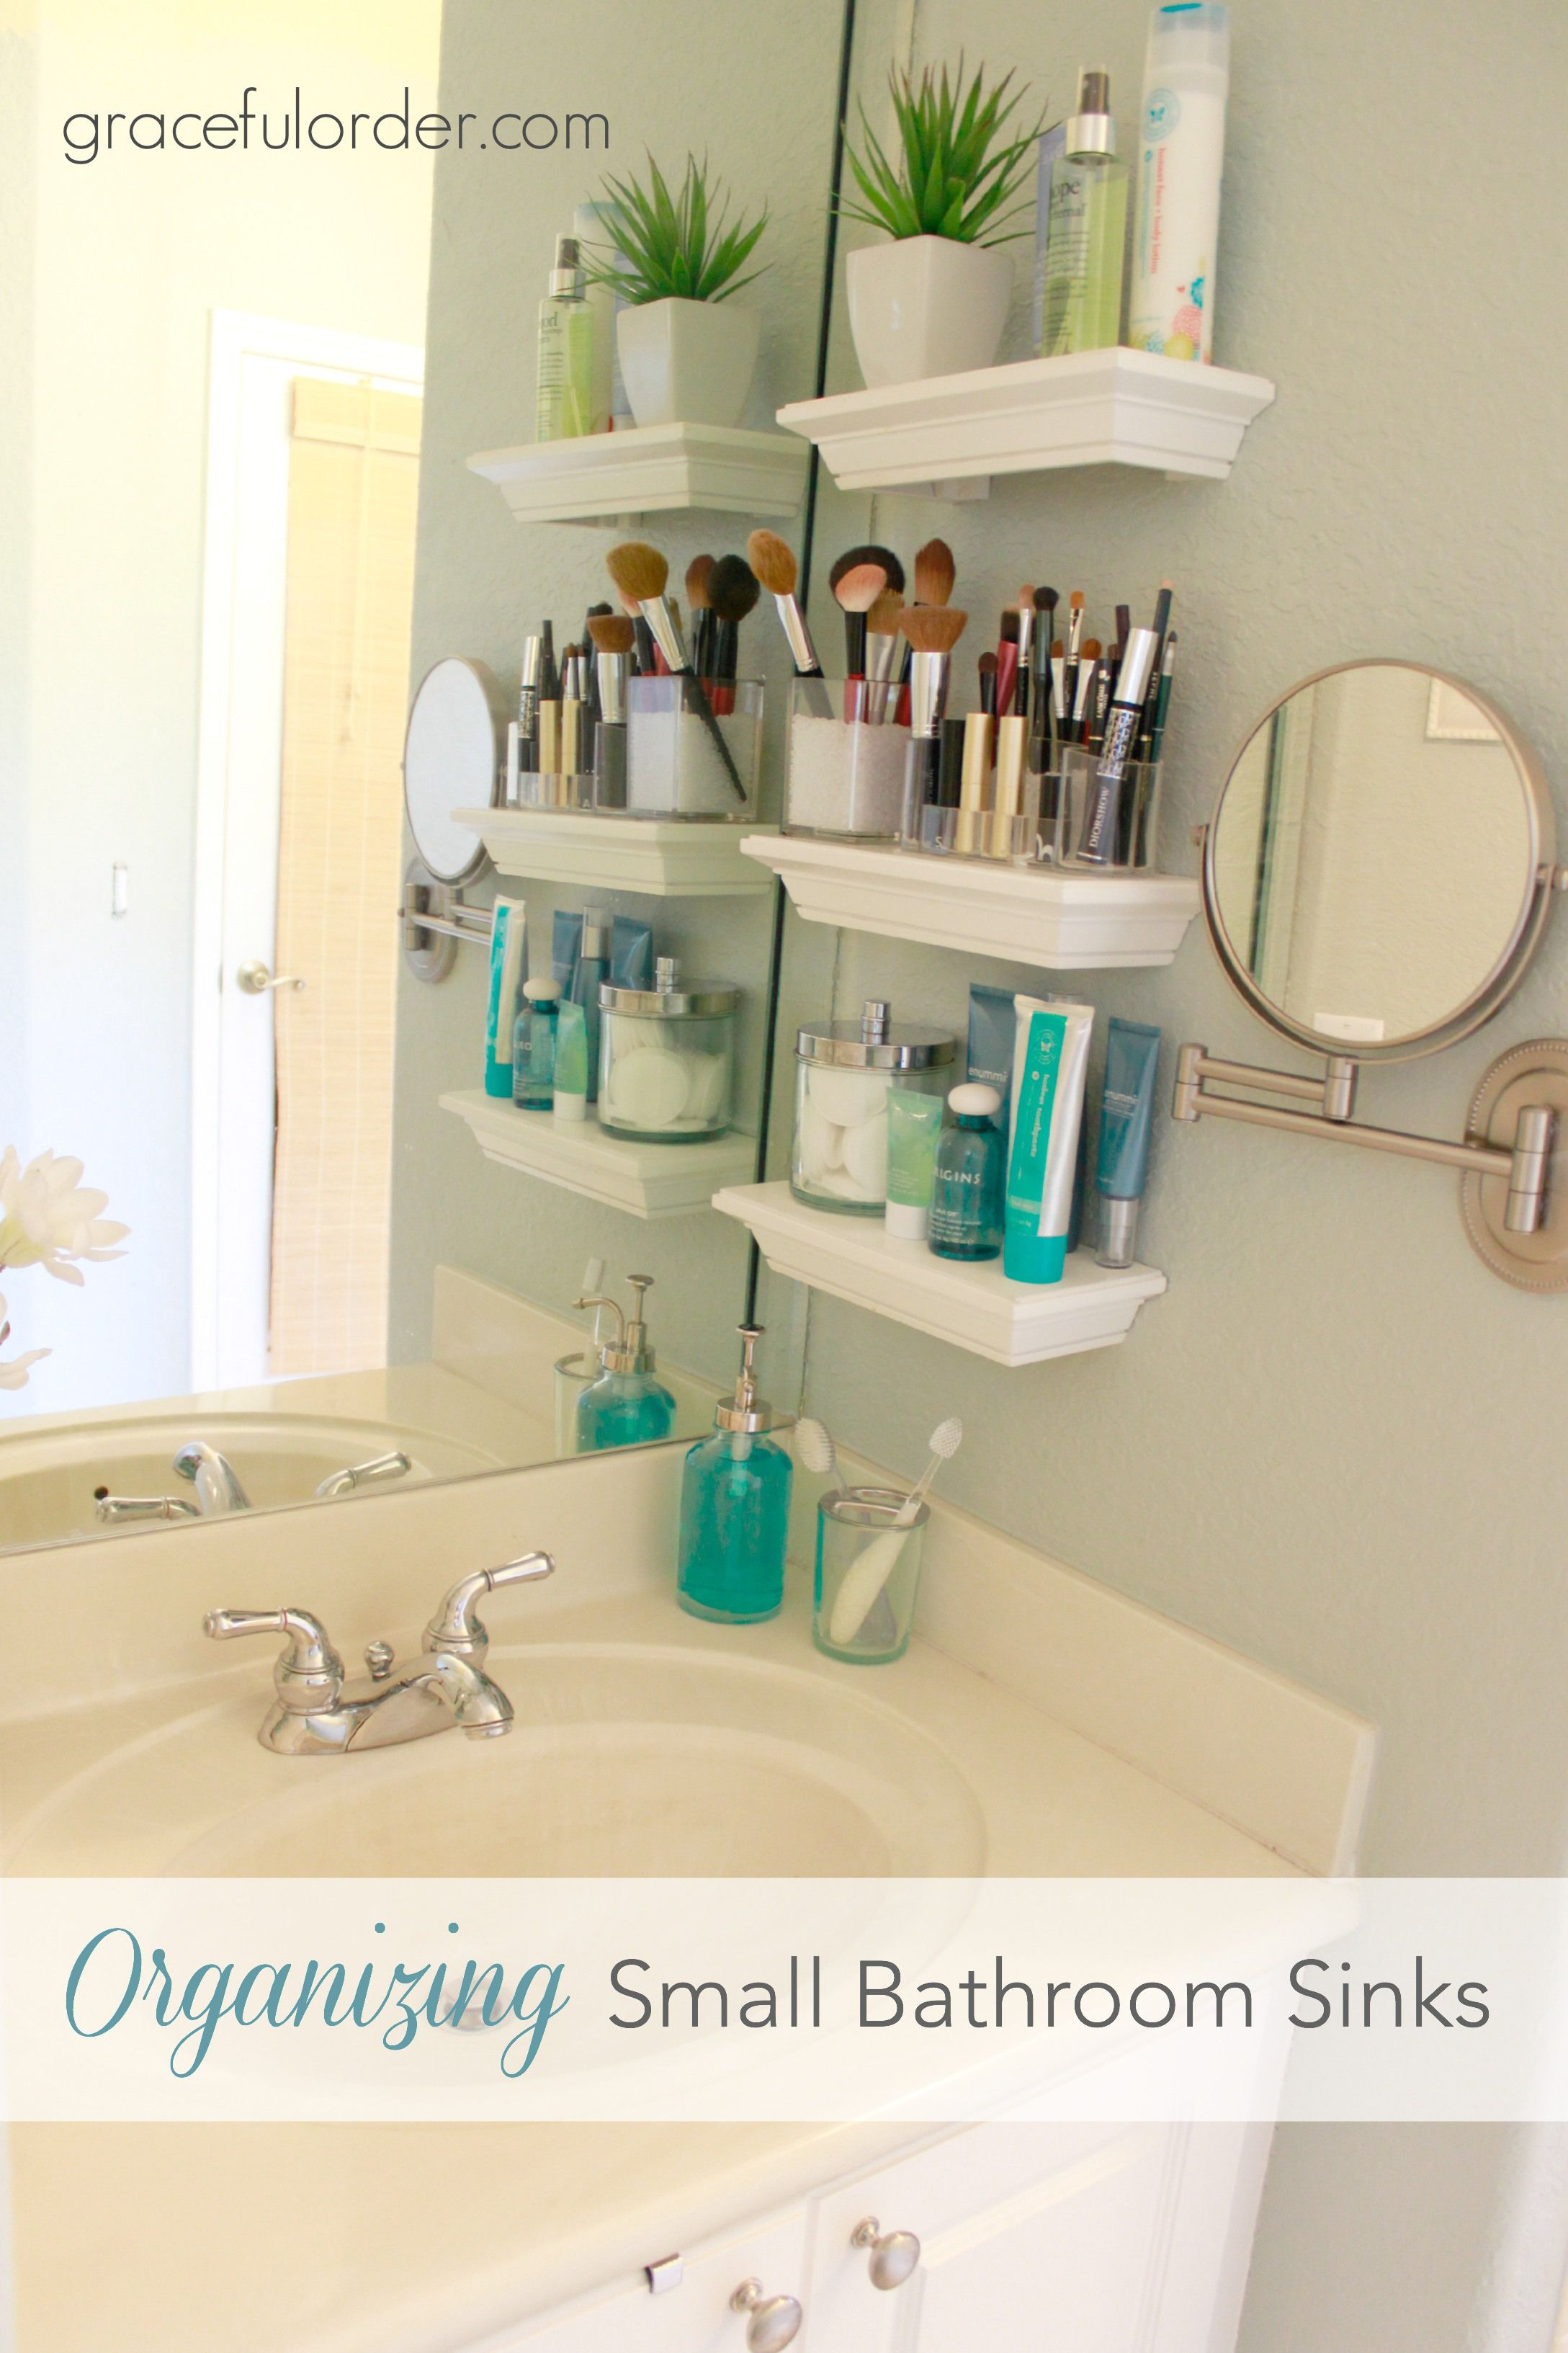 Organizing Small Bathroom Sinks  Graceful Ordergreat For A Adorable Bathroom Shelving Ideas For Small Spaces Design Ideas